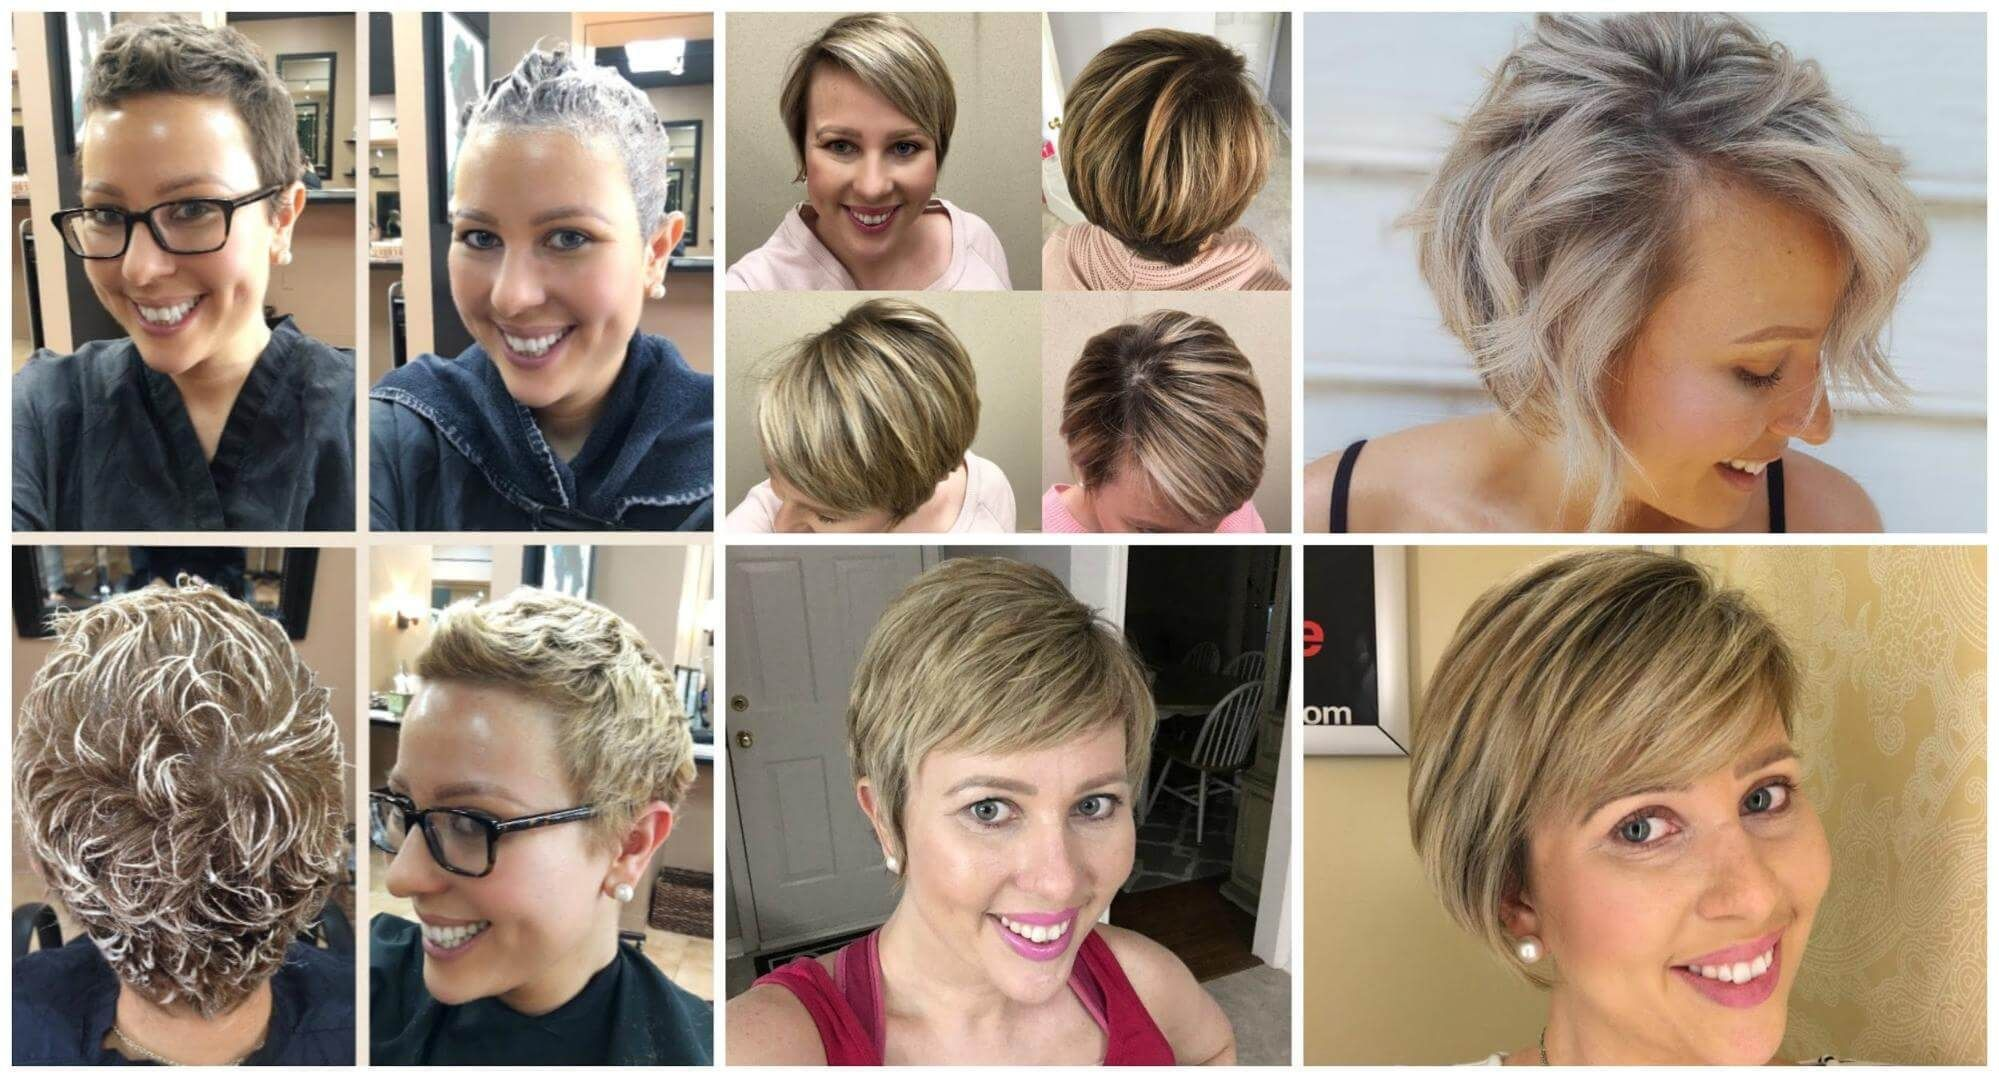 Hairstyles For Hair Growing Back After Chemo Growth Pictures Of Hair Growing Back After Chemo 77